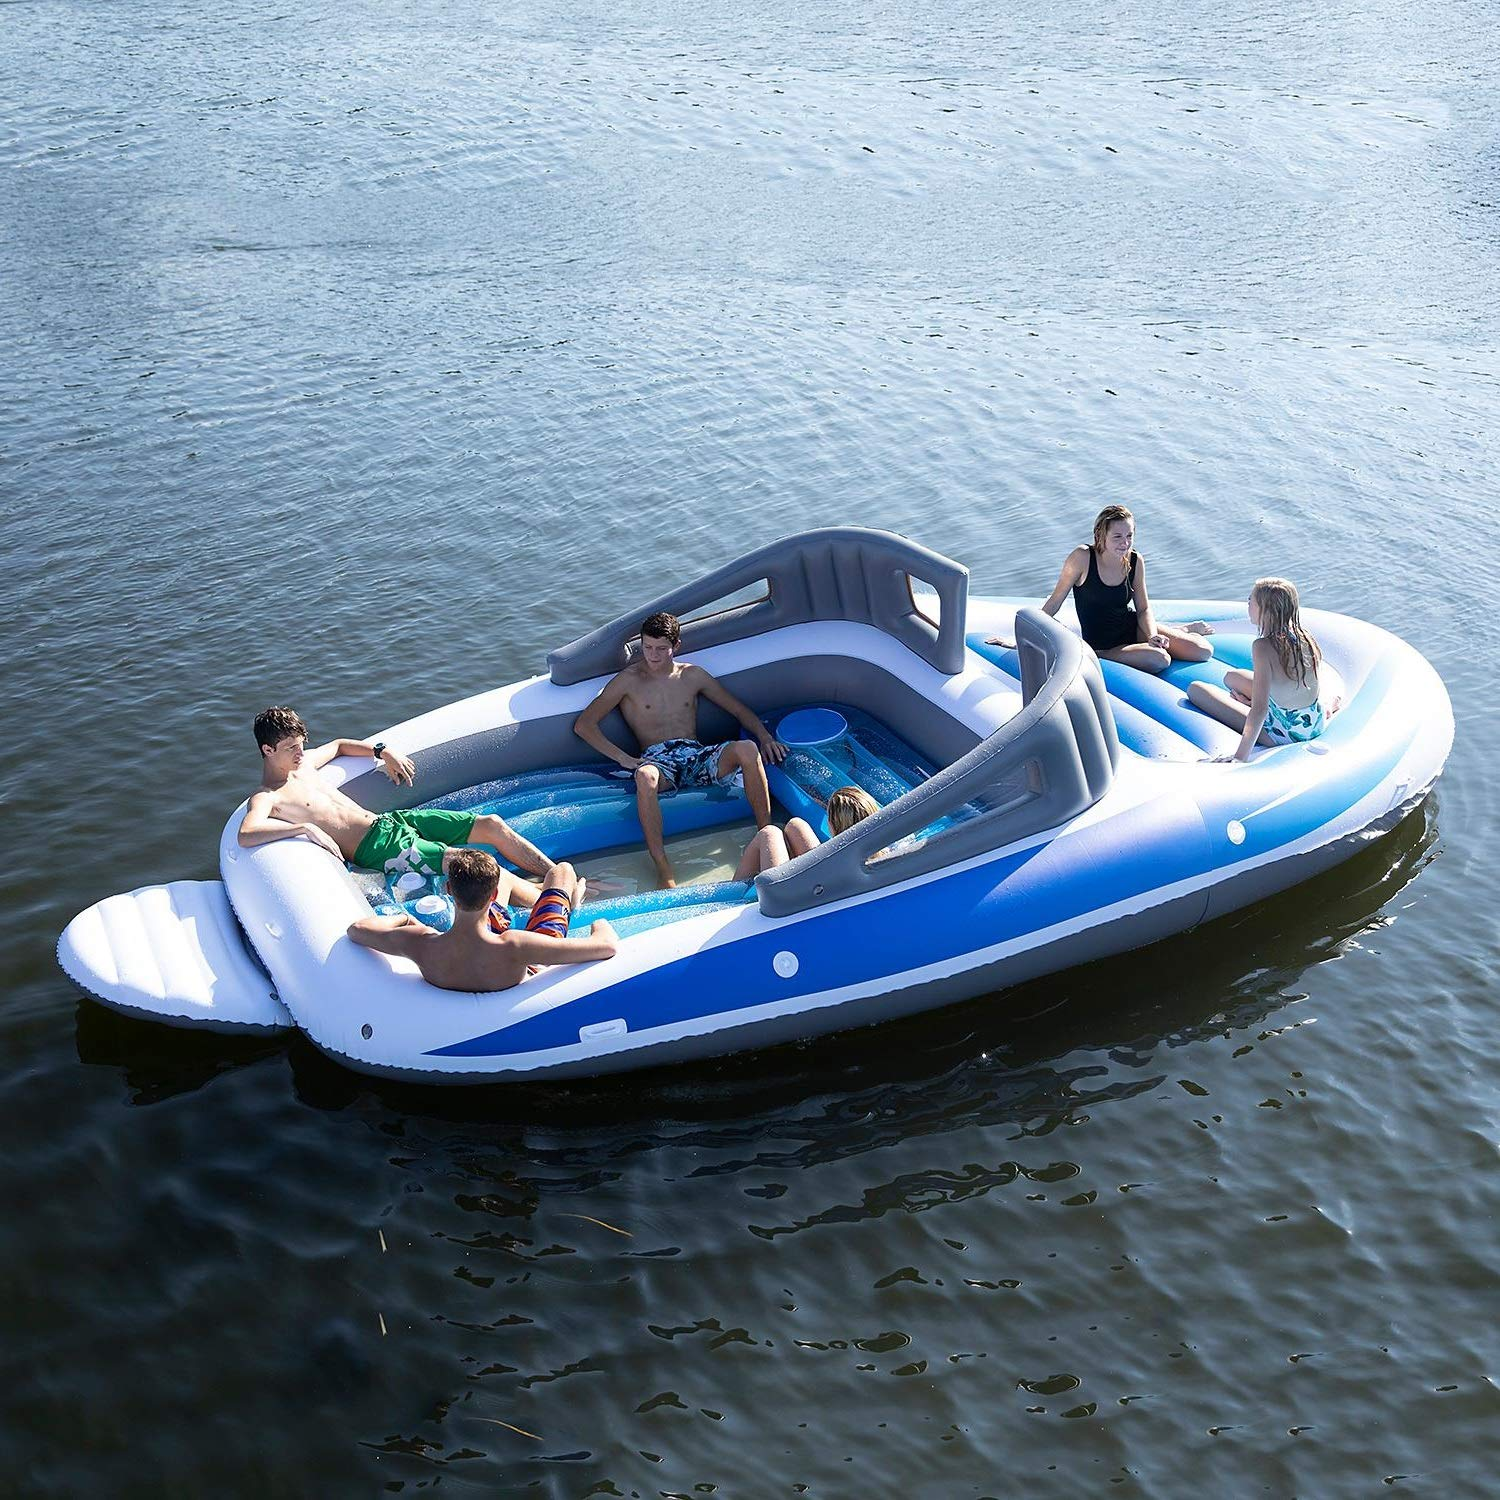 Huge Inflatable Speedboat with a Built-in Drinks Cooler